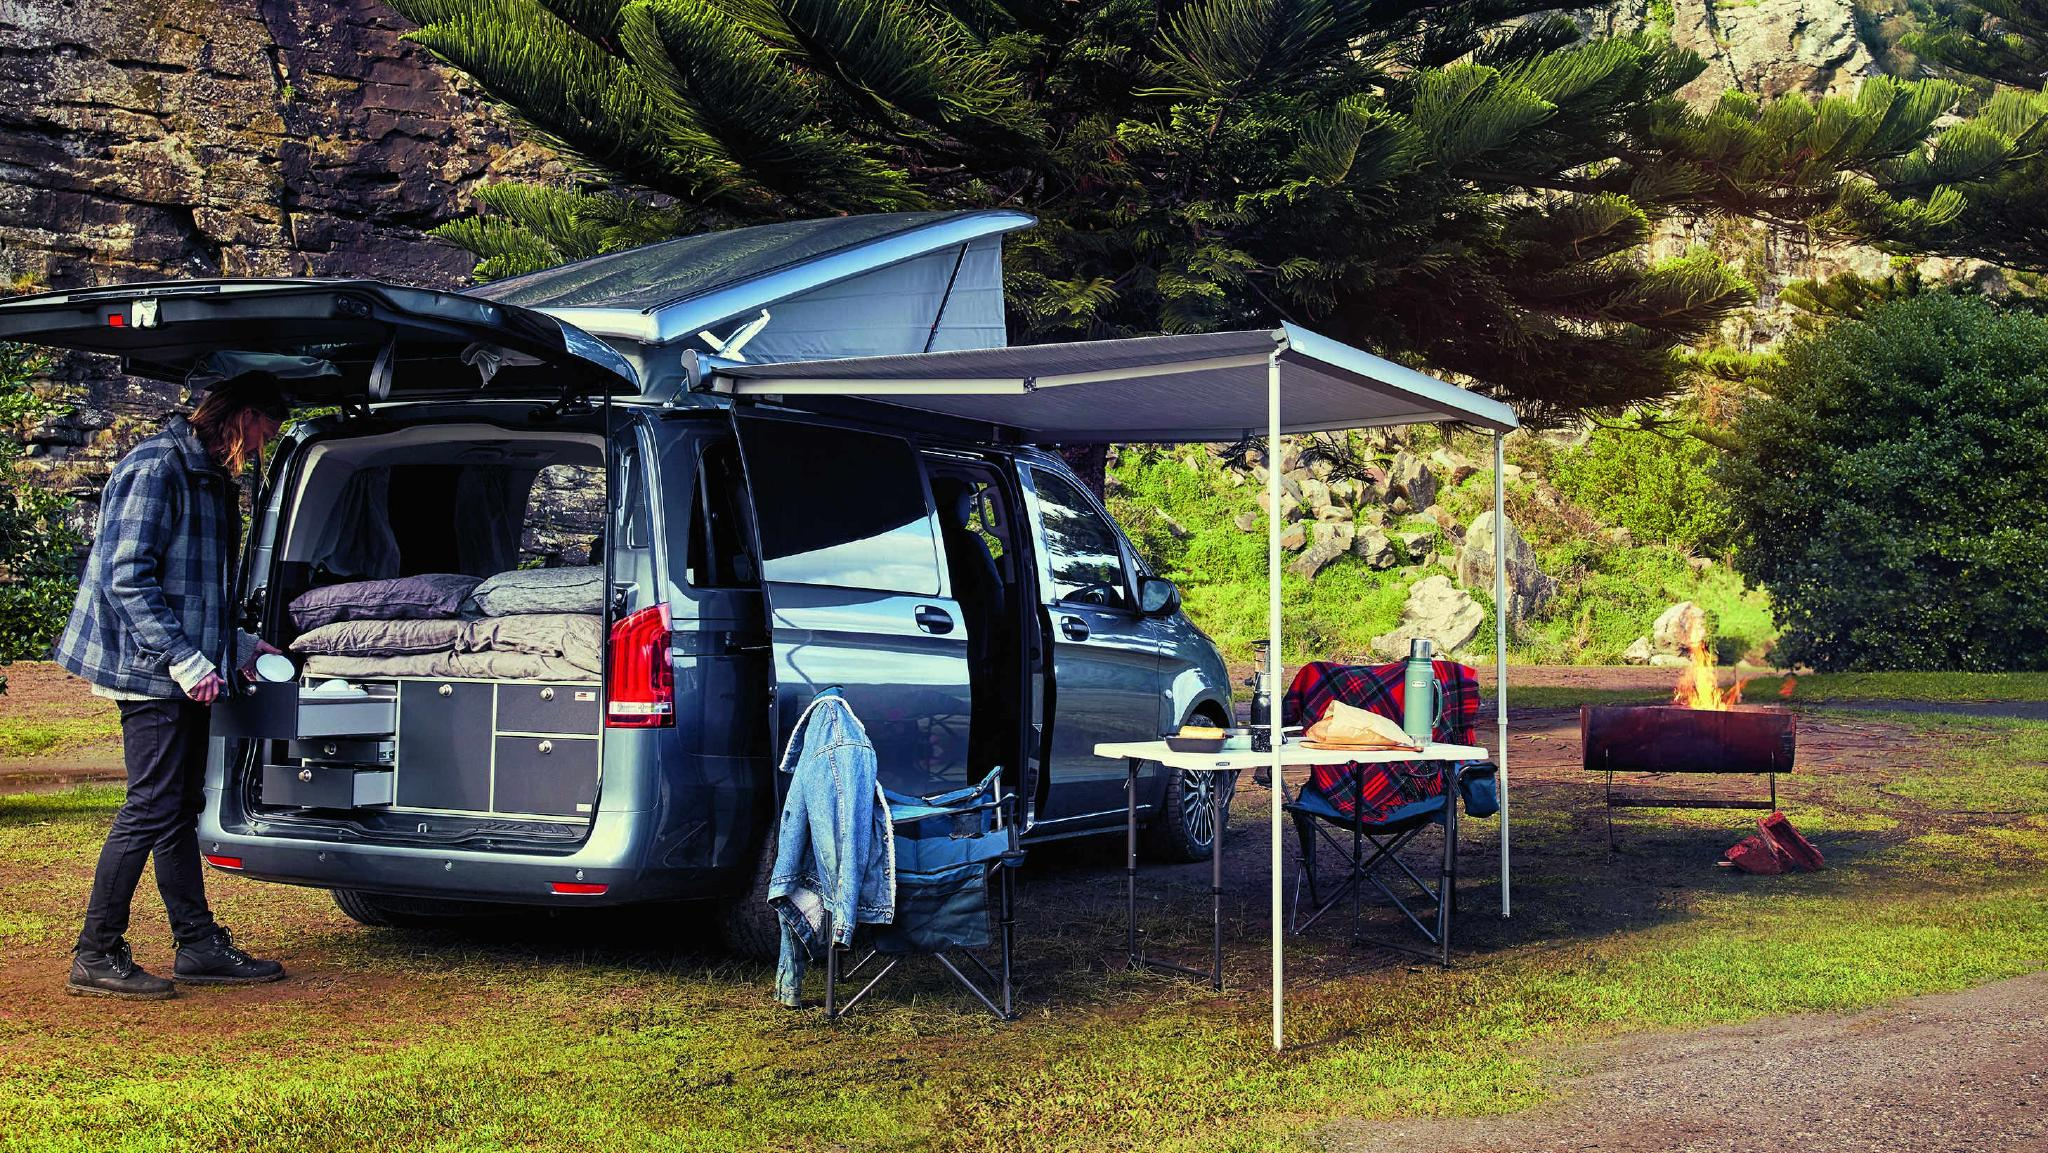 The Mercedes-Benz Campervan is brought to life with the VanEssa mobilcamping Rear Kitchen Pod for cooking, refrigeration and much more...